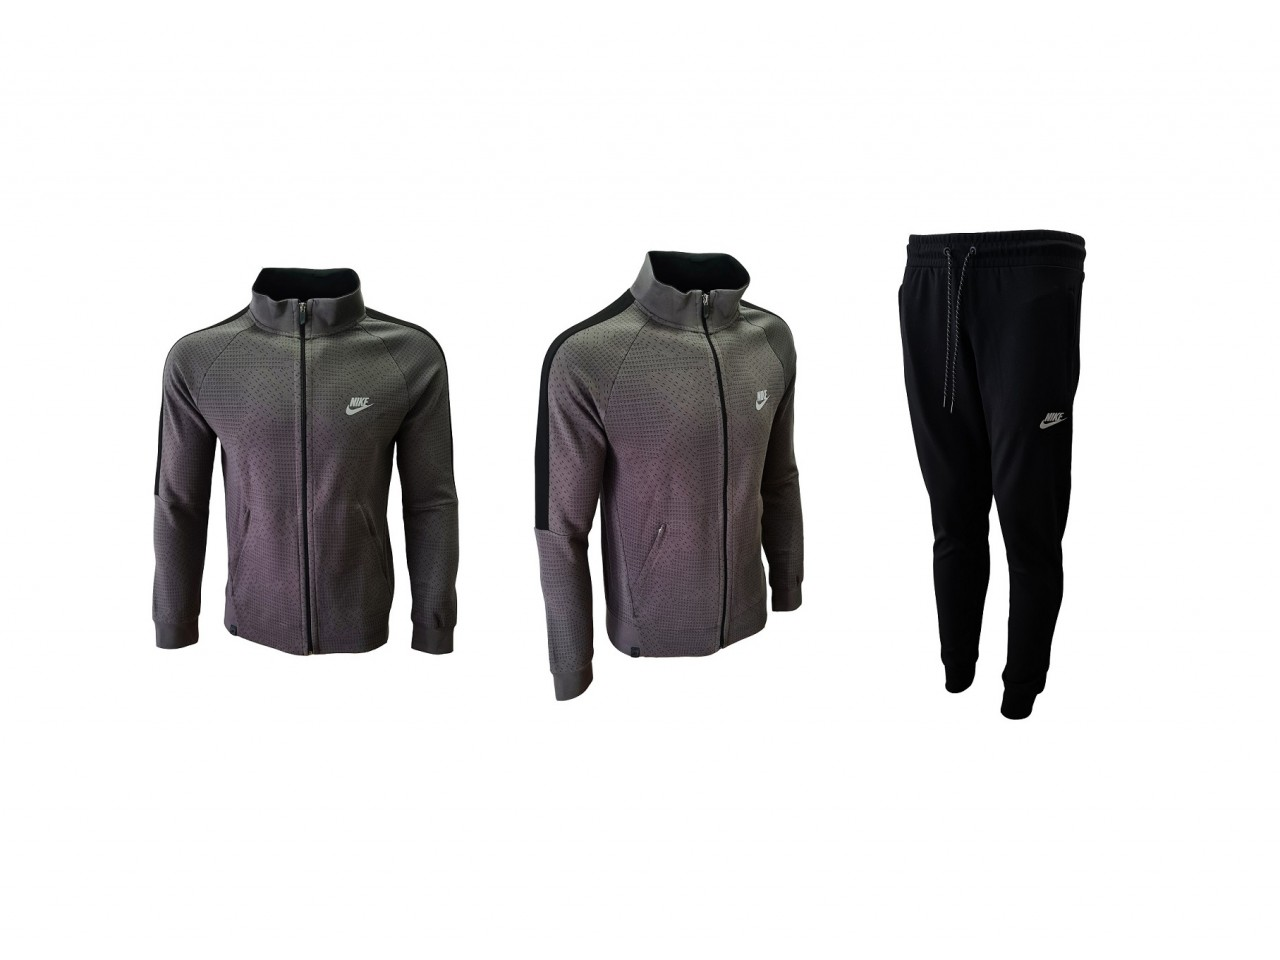 Nike Tracksuit New Model Dark Grey Black